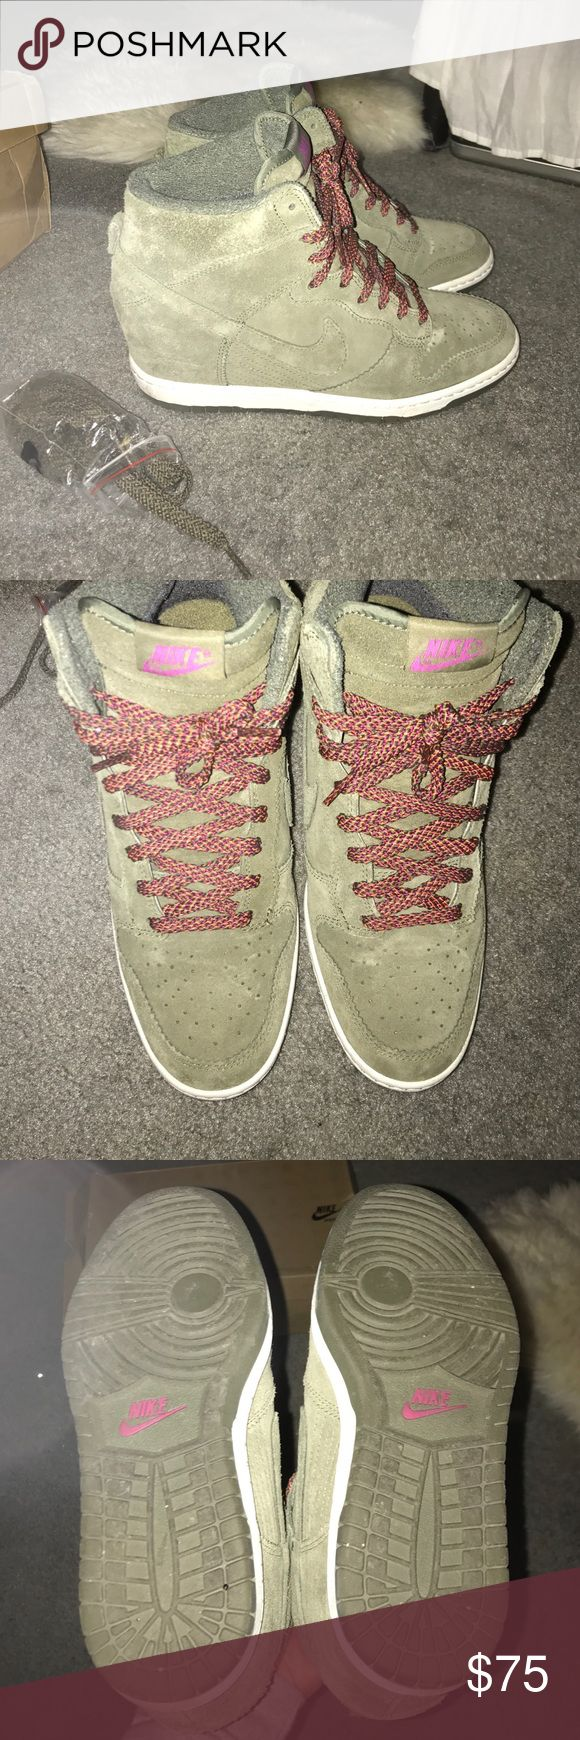 Nike Dunk Sky Hi Olive Suede Wedge Nike sneaker. Comes with extra set of laces in olive. Sneakers in very good condition. Nike Shoes Athletic Shoes